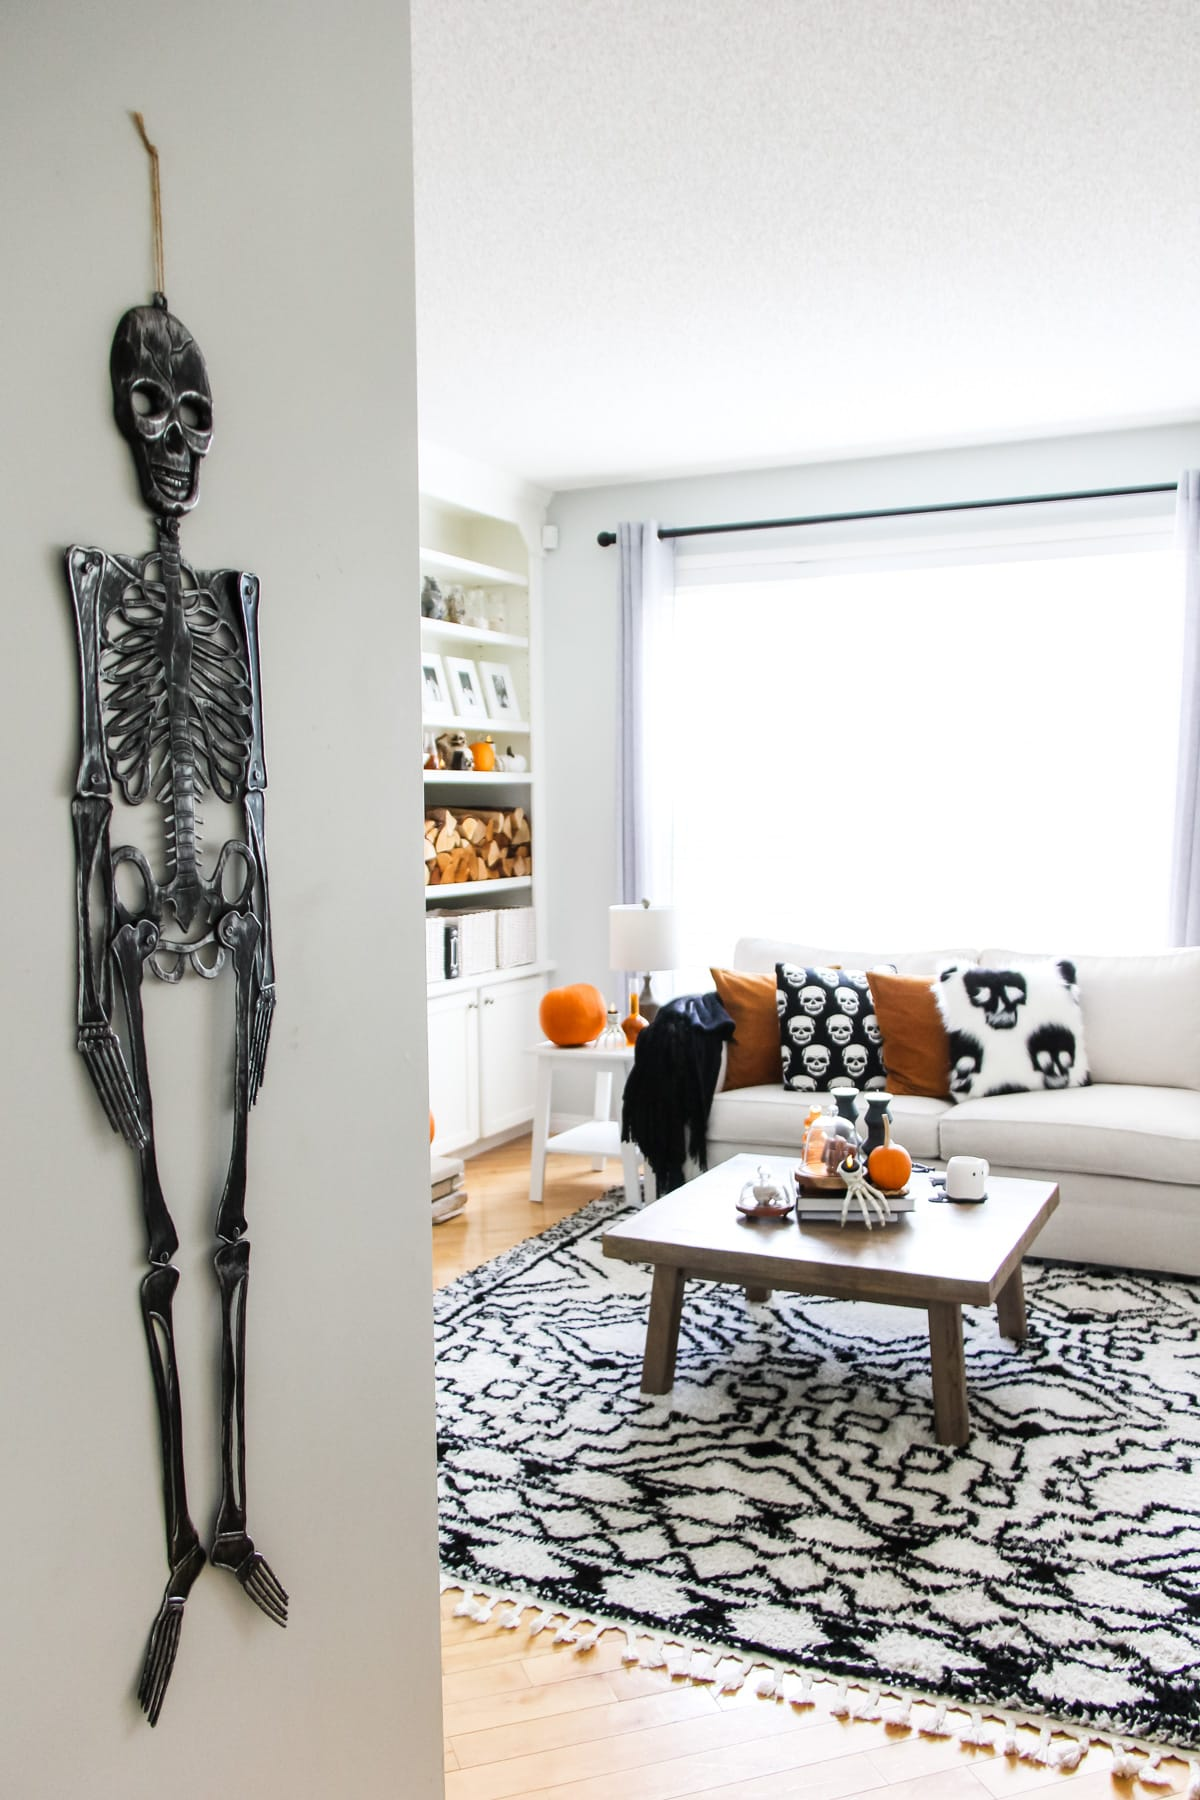 a black skeleton decoration hangs from a wall looking into a living room filled with black, white and orange Halloween decorations